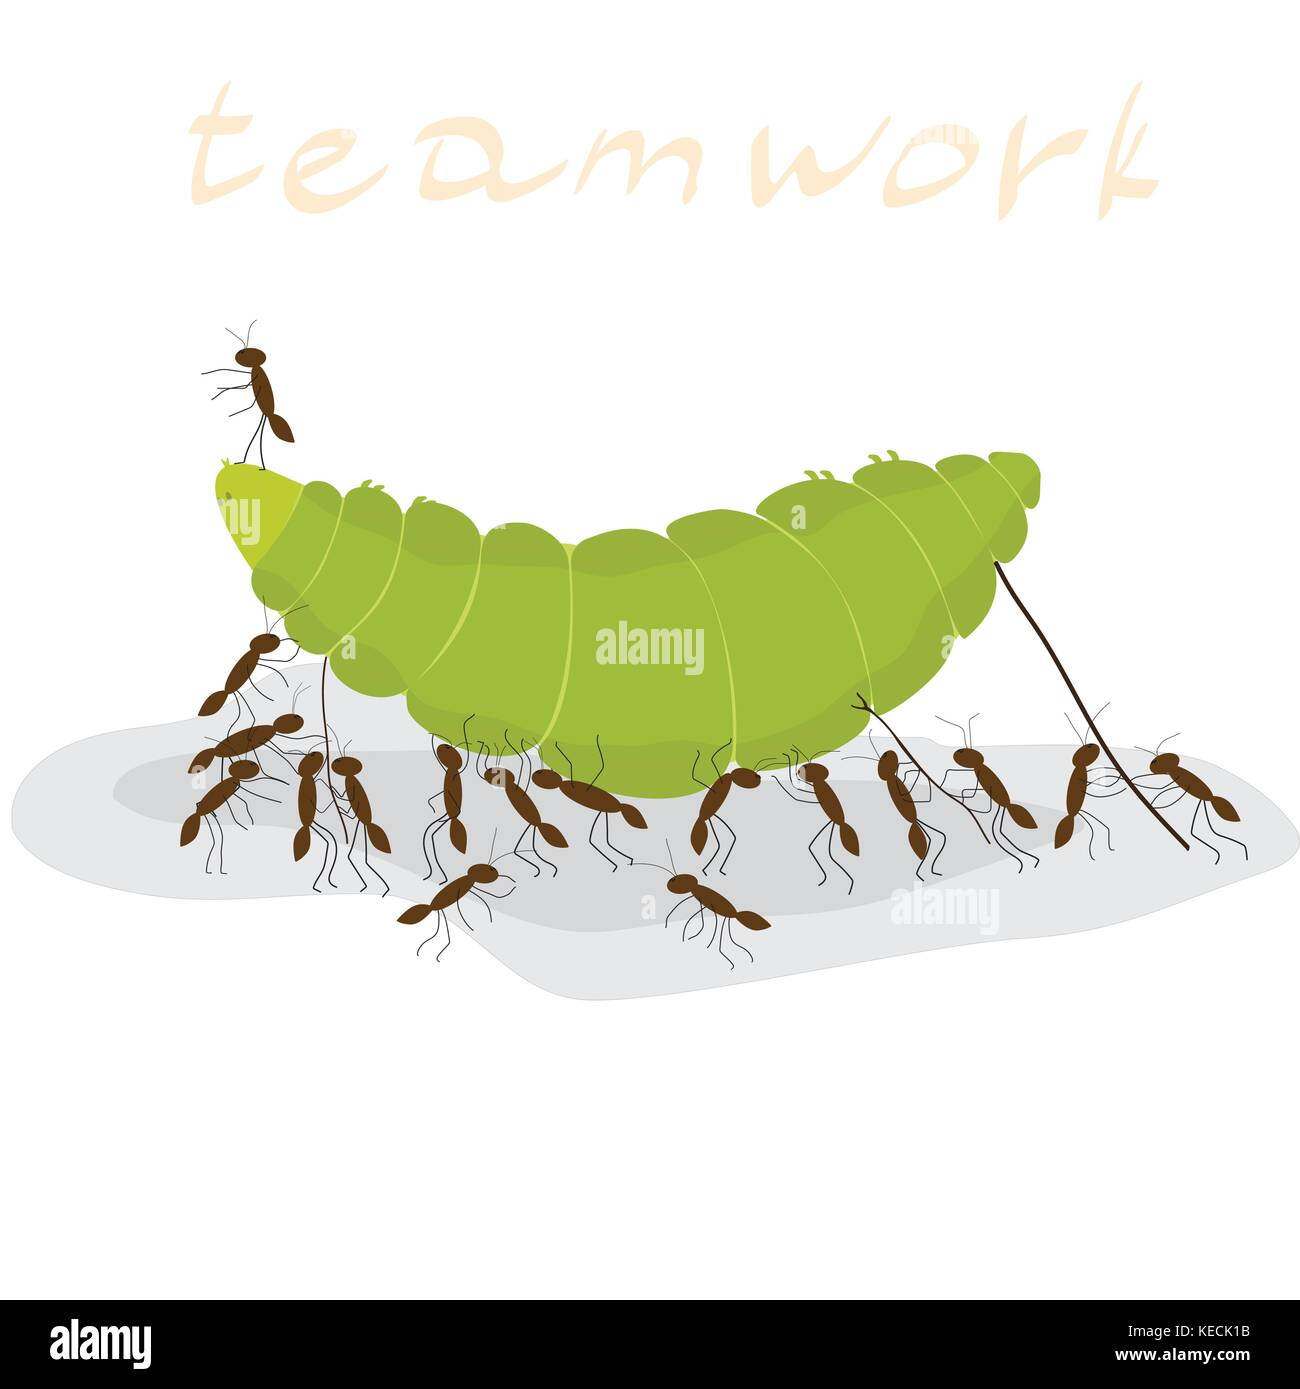 many ants dragging a green caterpillar on a white background, inscription teamwork - Stock Vector